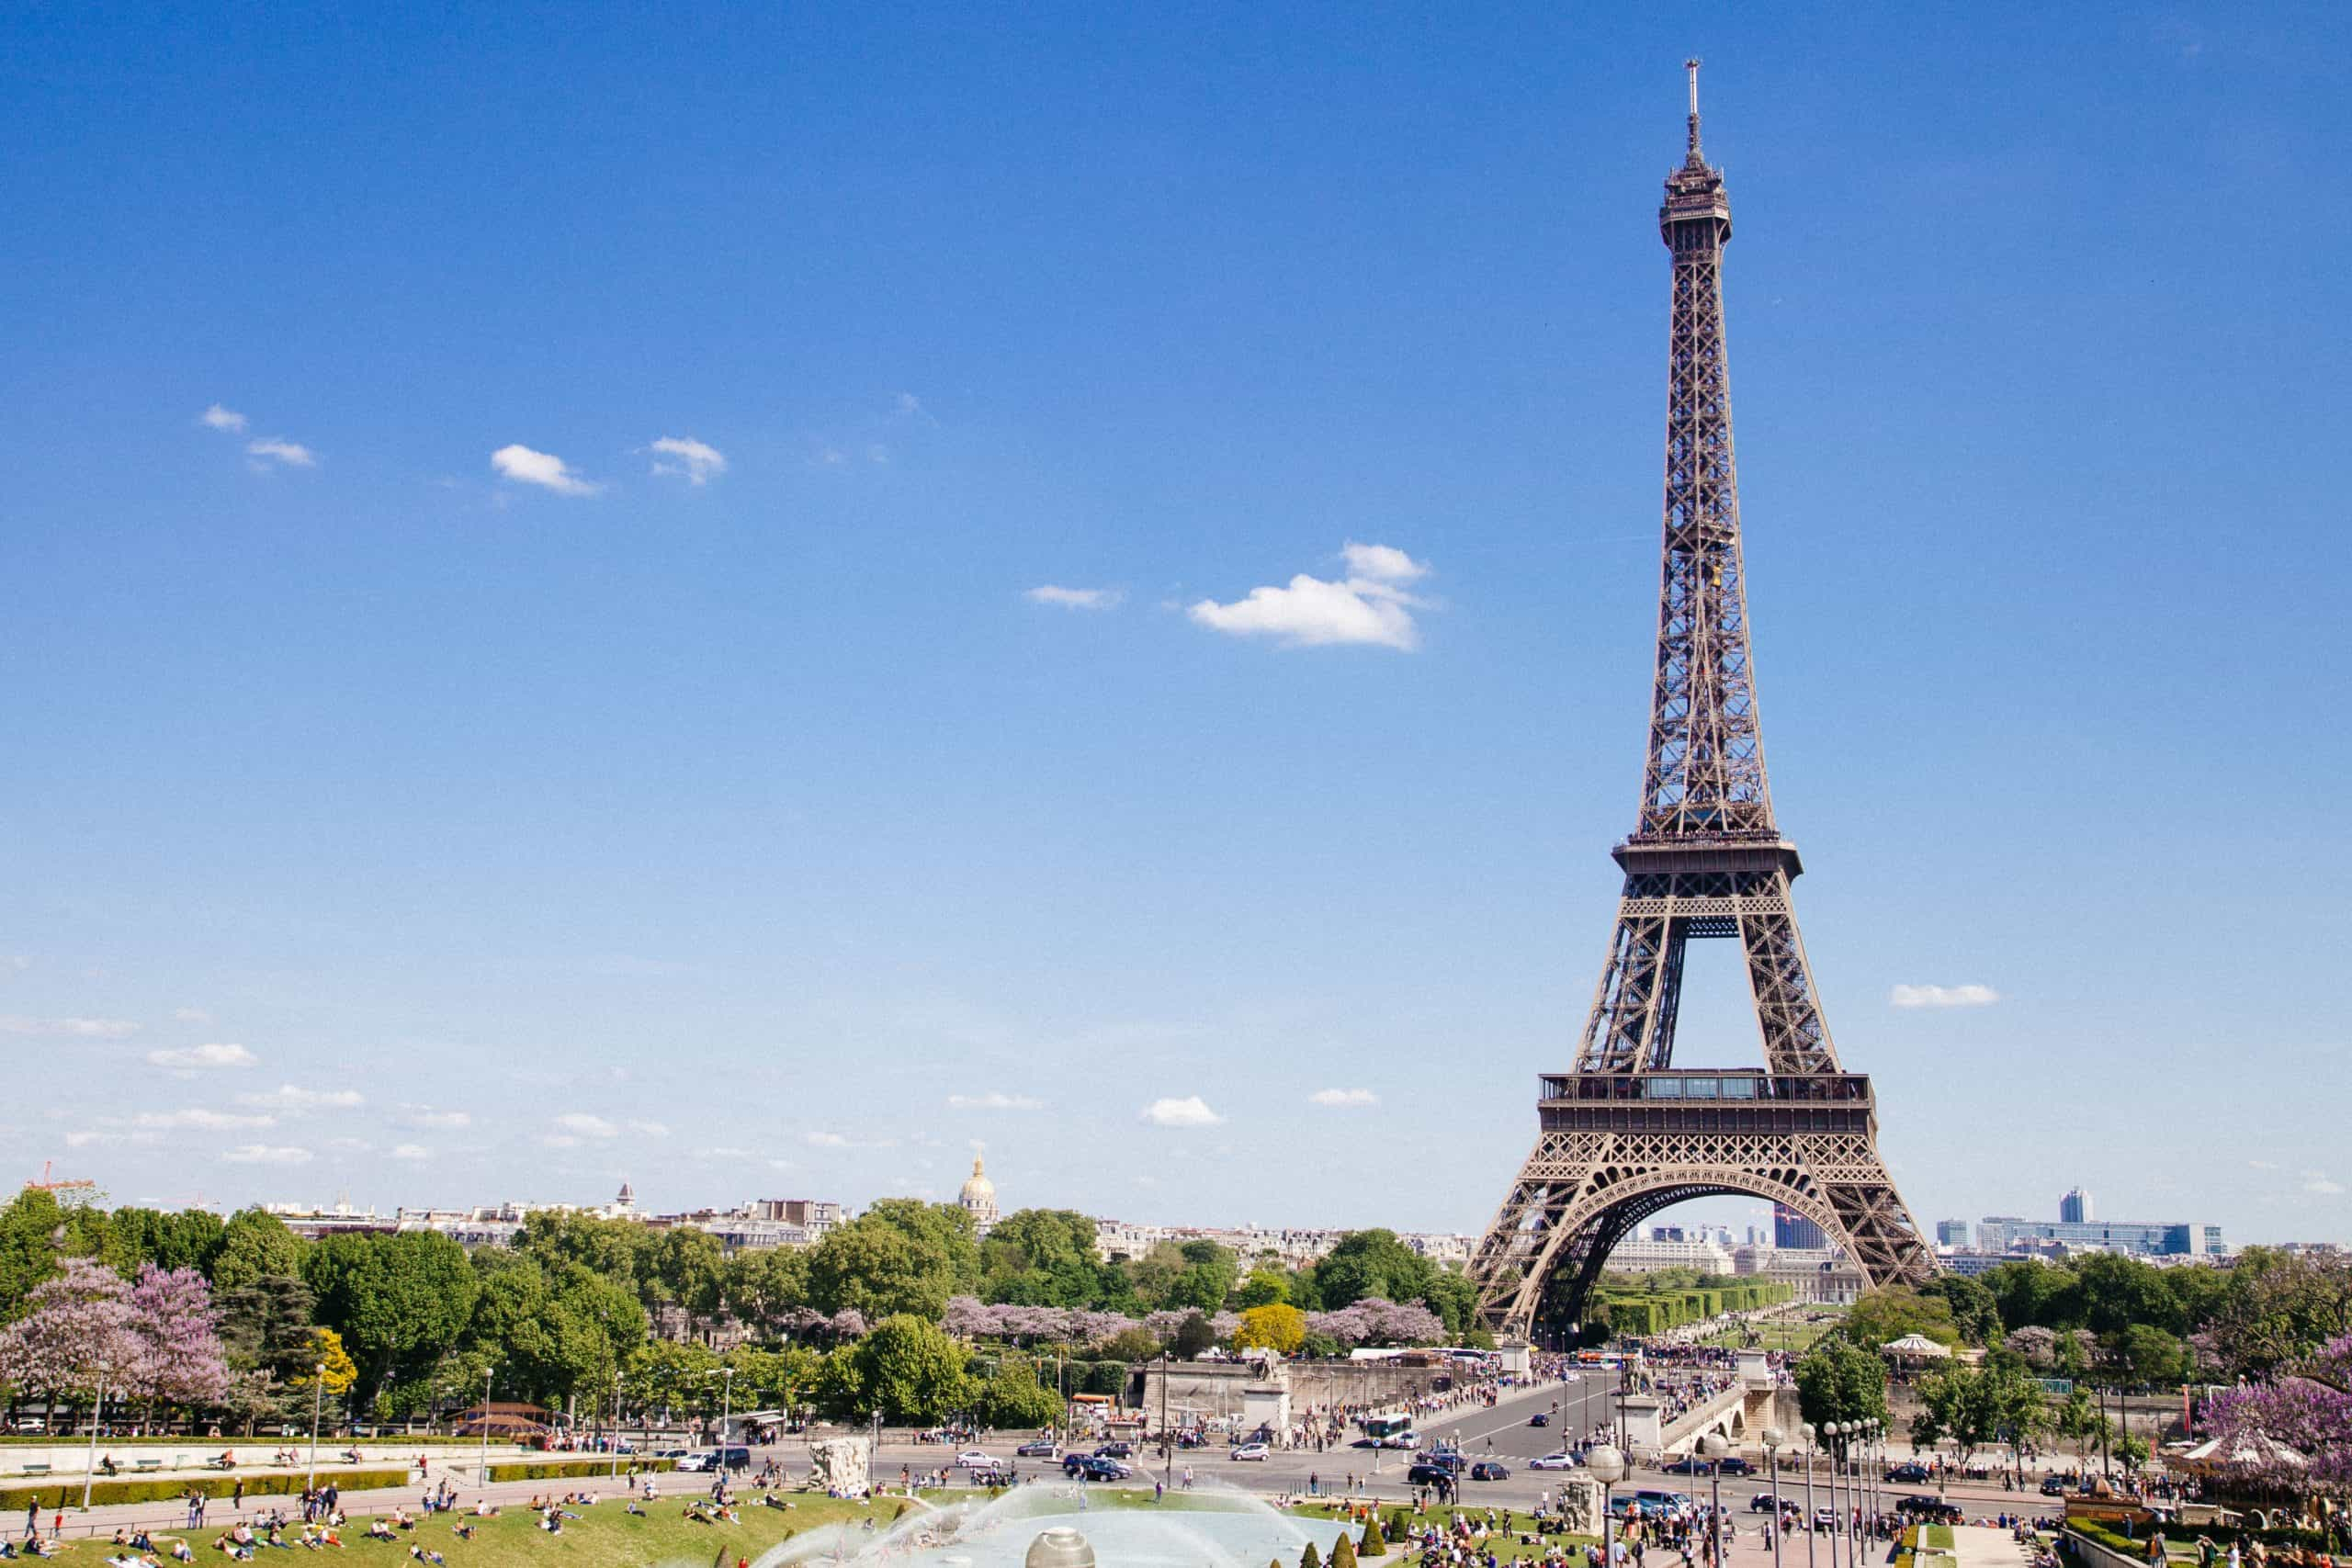 Driving Tours of Europe Are a Great Way to Learn About History